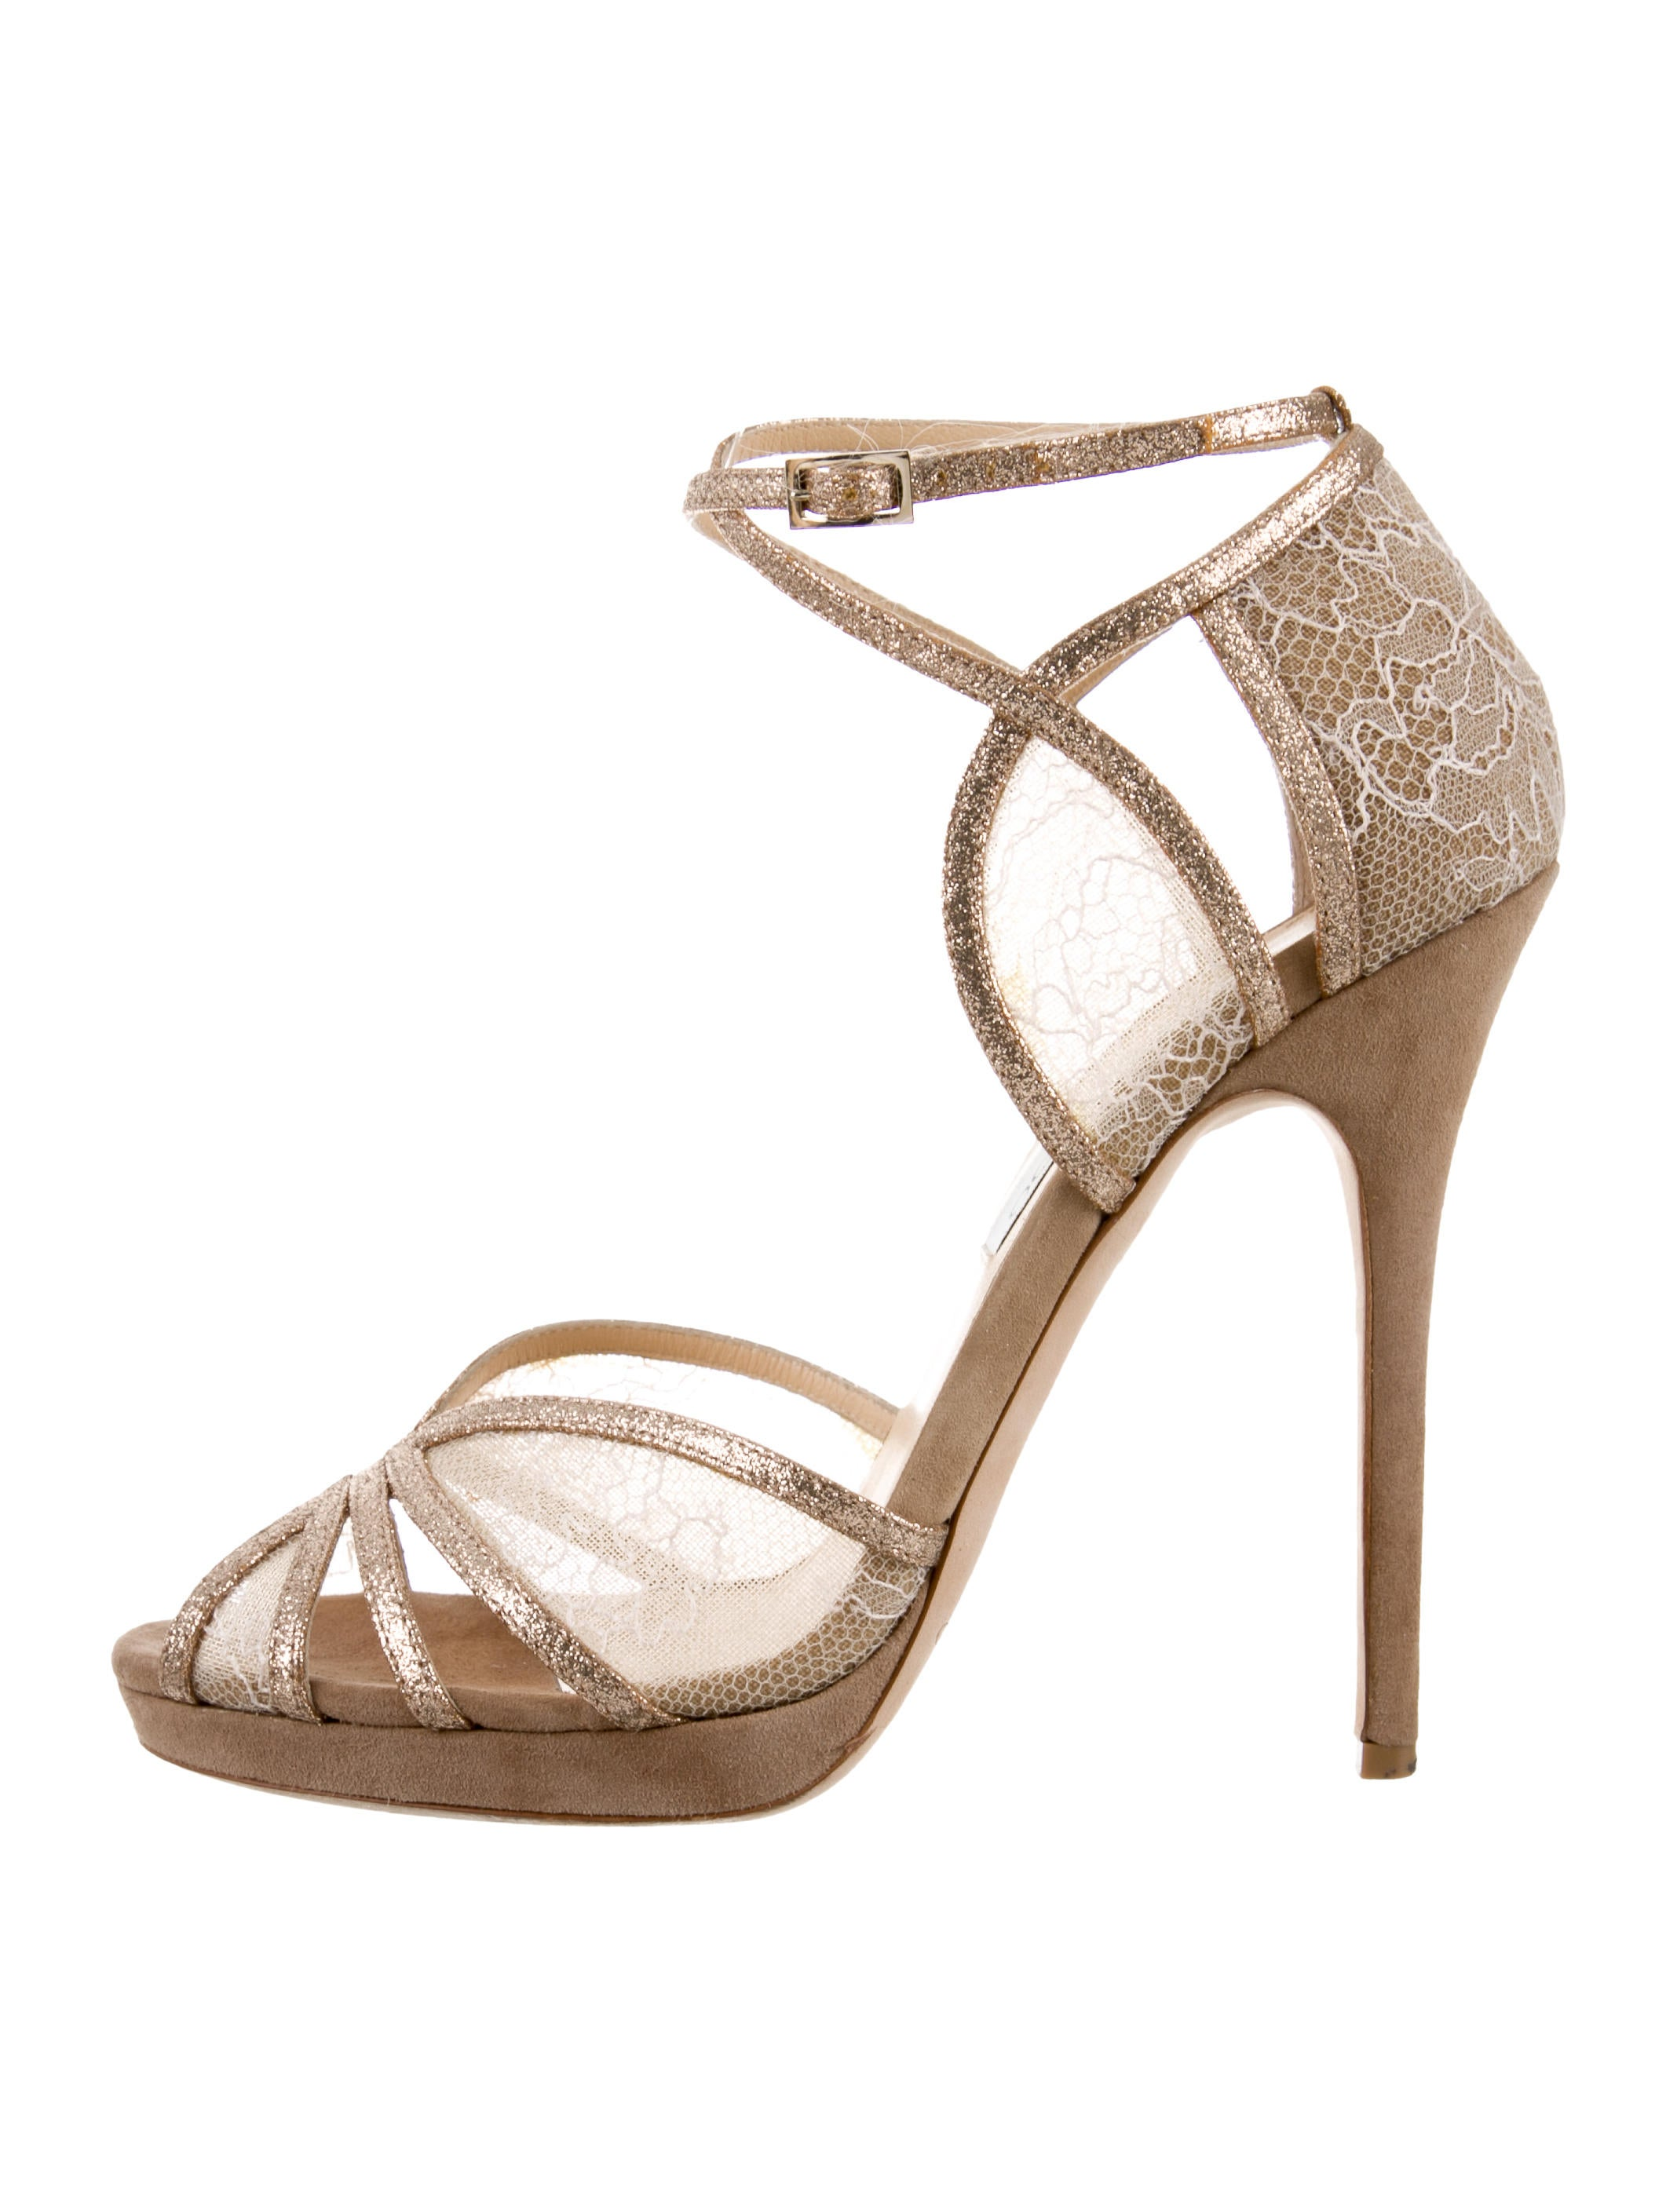 6489ac74a3c Jimmy Choo Fitch Glitter-Trimmed Sandals - Shoes - JIM92188